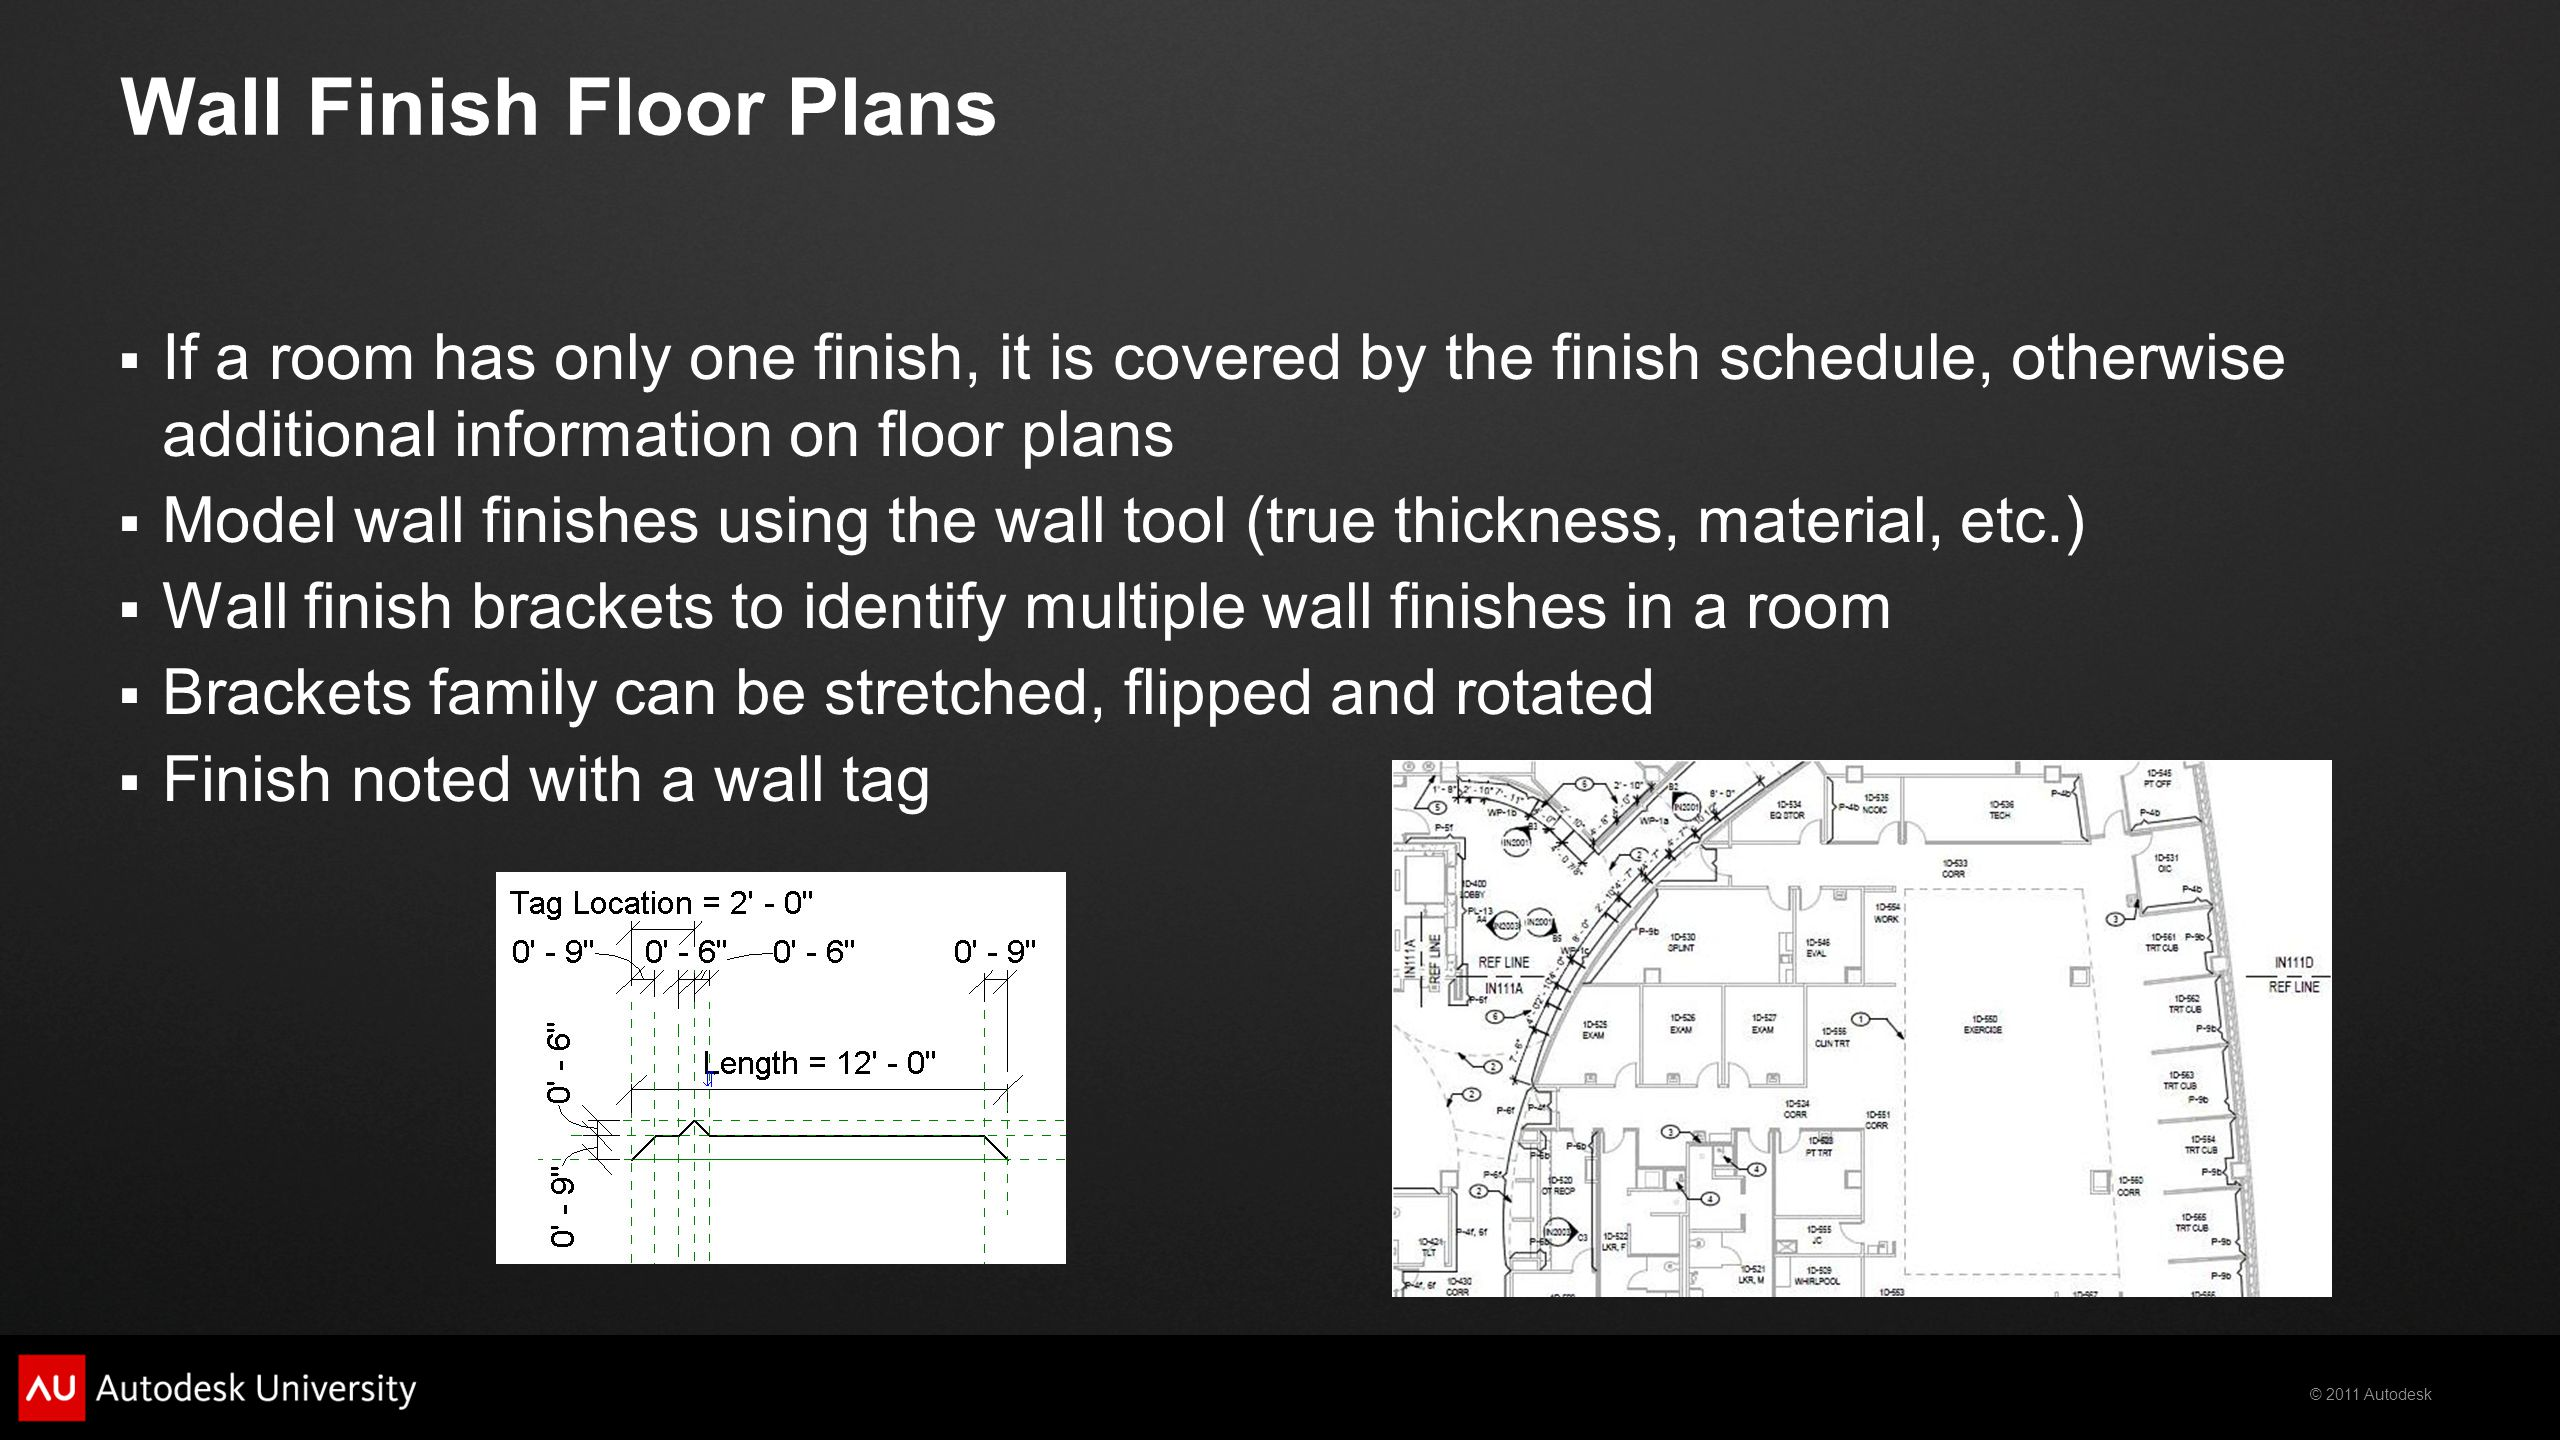 Wall Finish Floor Plans